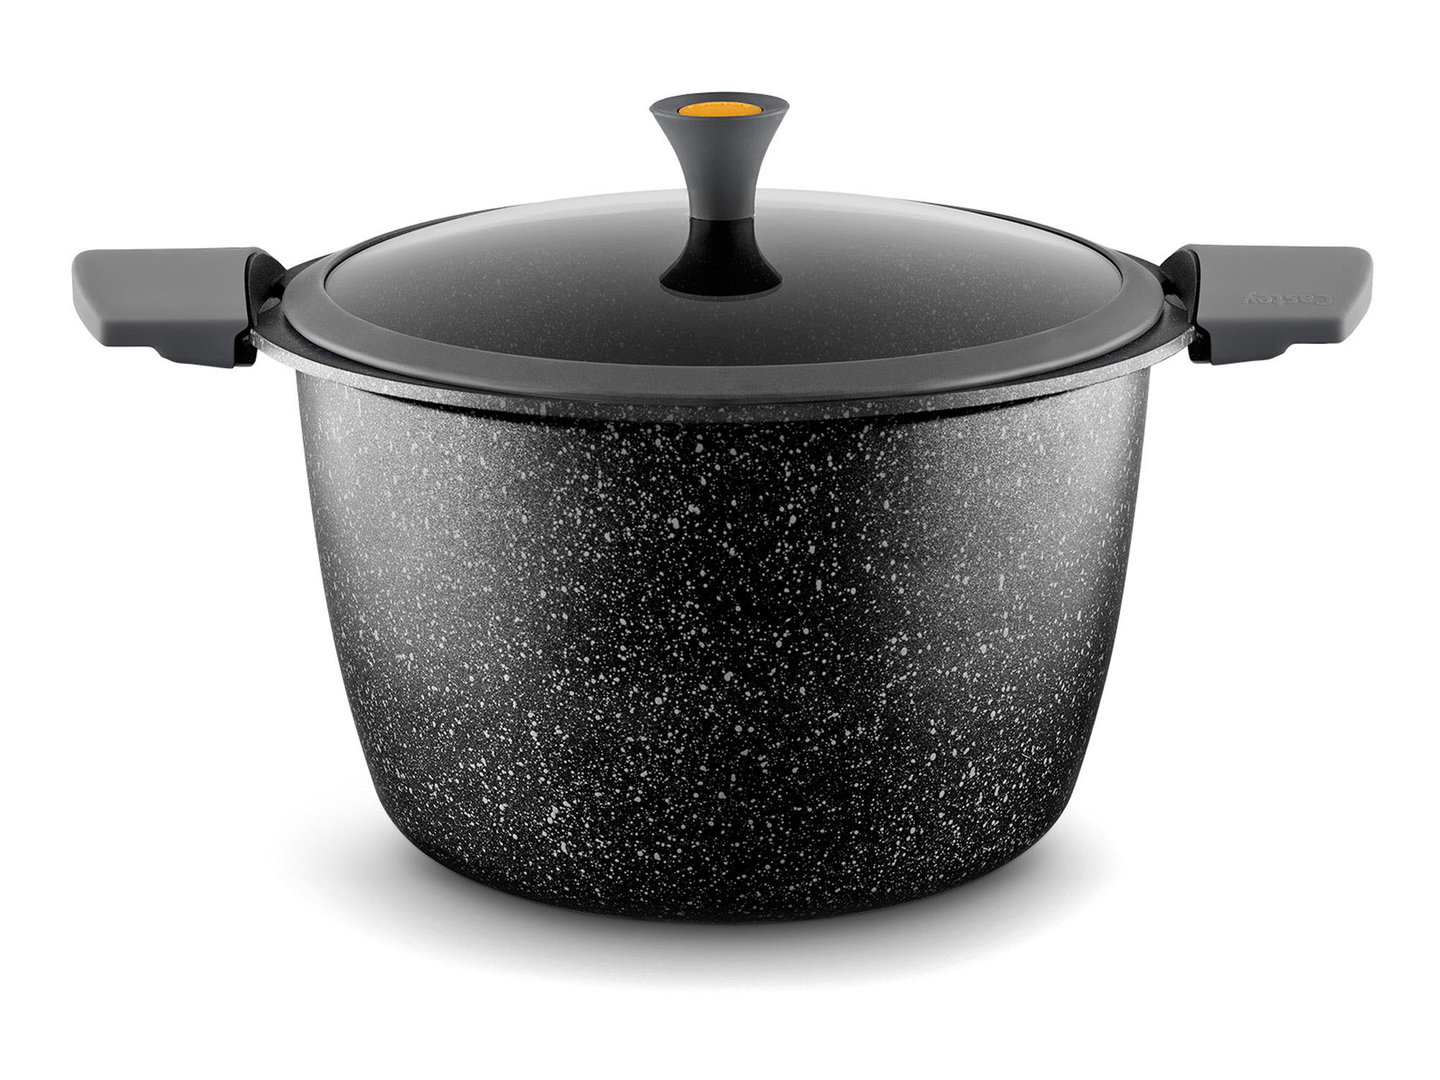 CASTEY cast aluminum stockpot VULCANO 26 cm with silicone handles